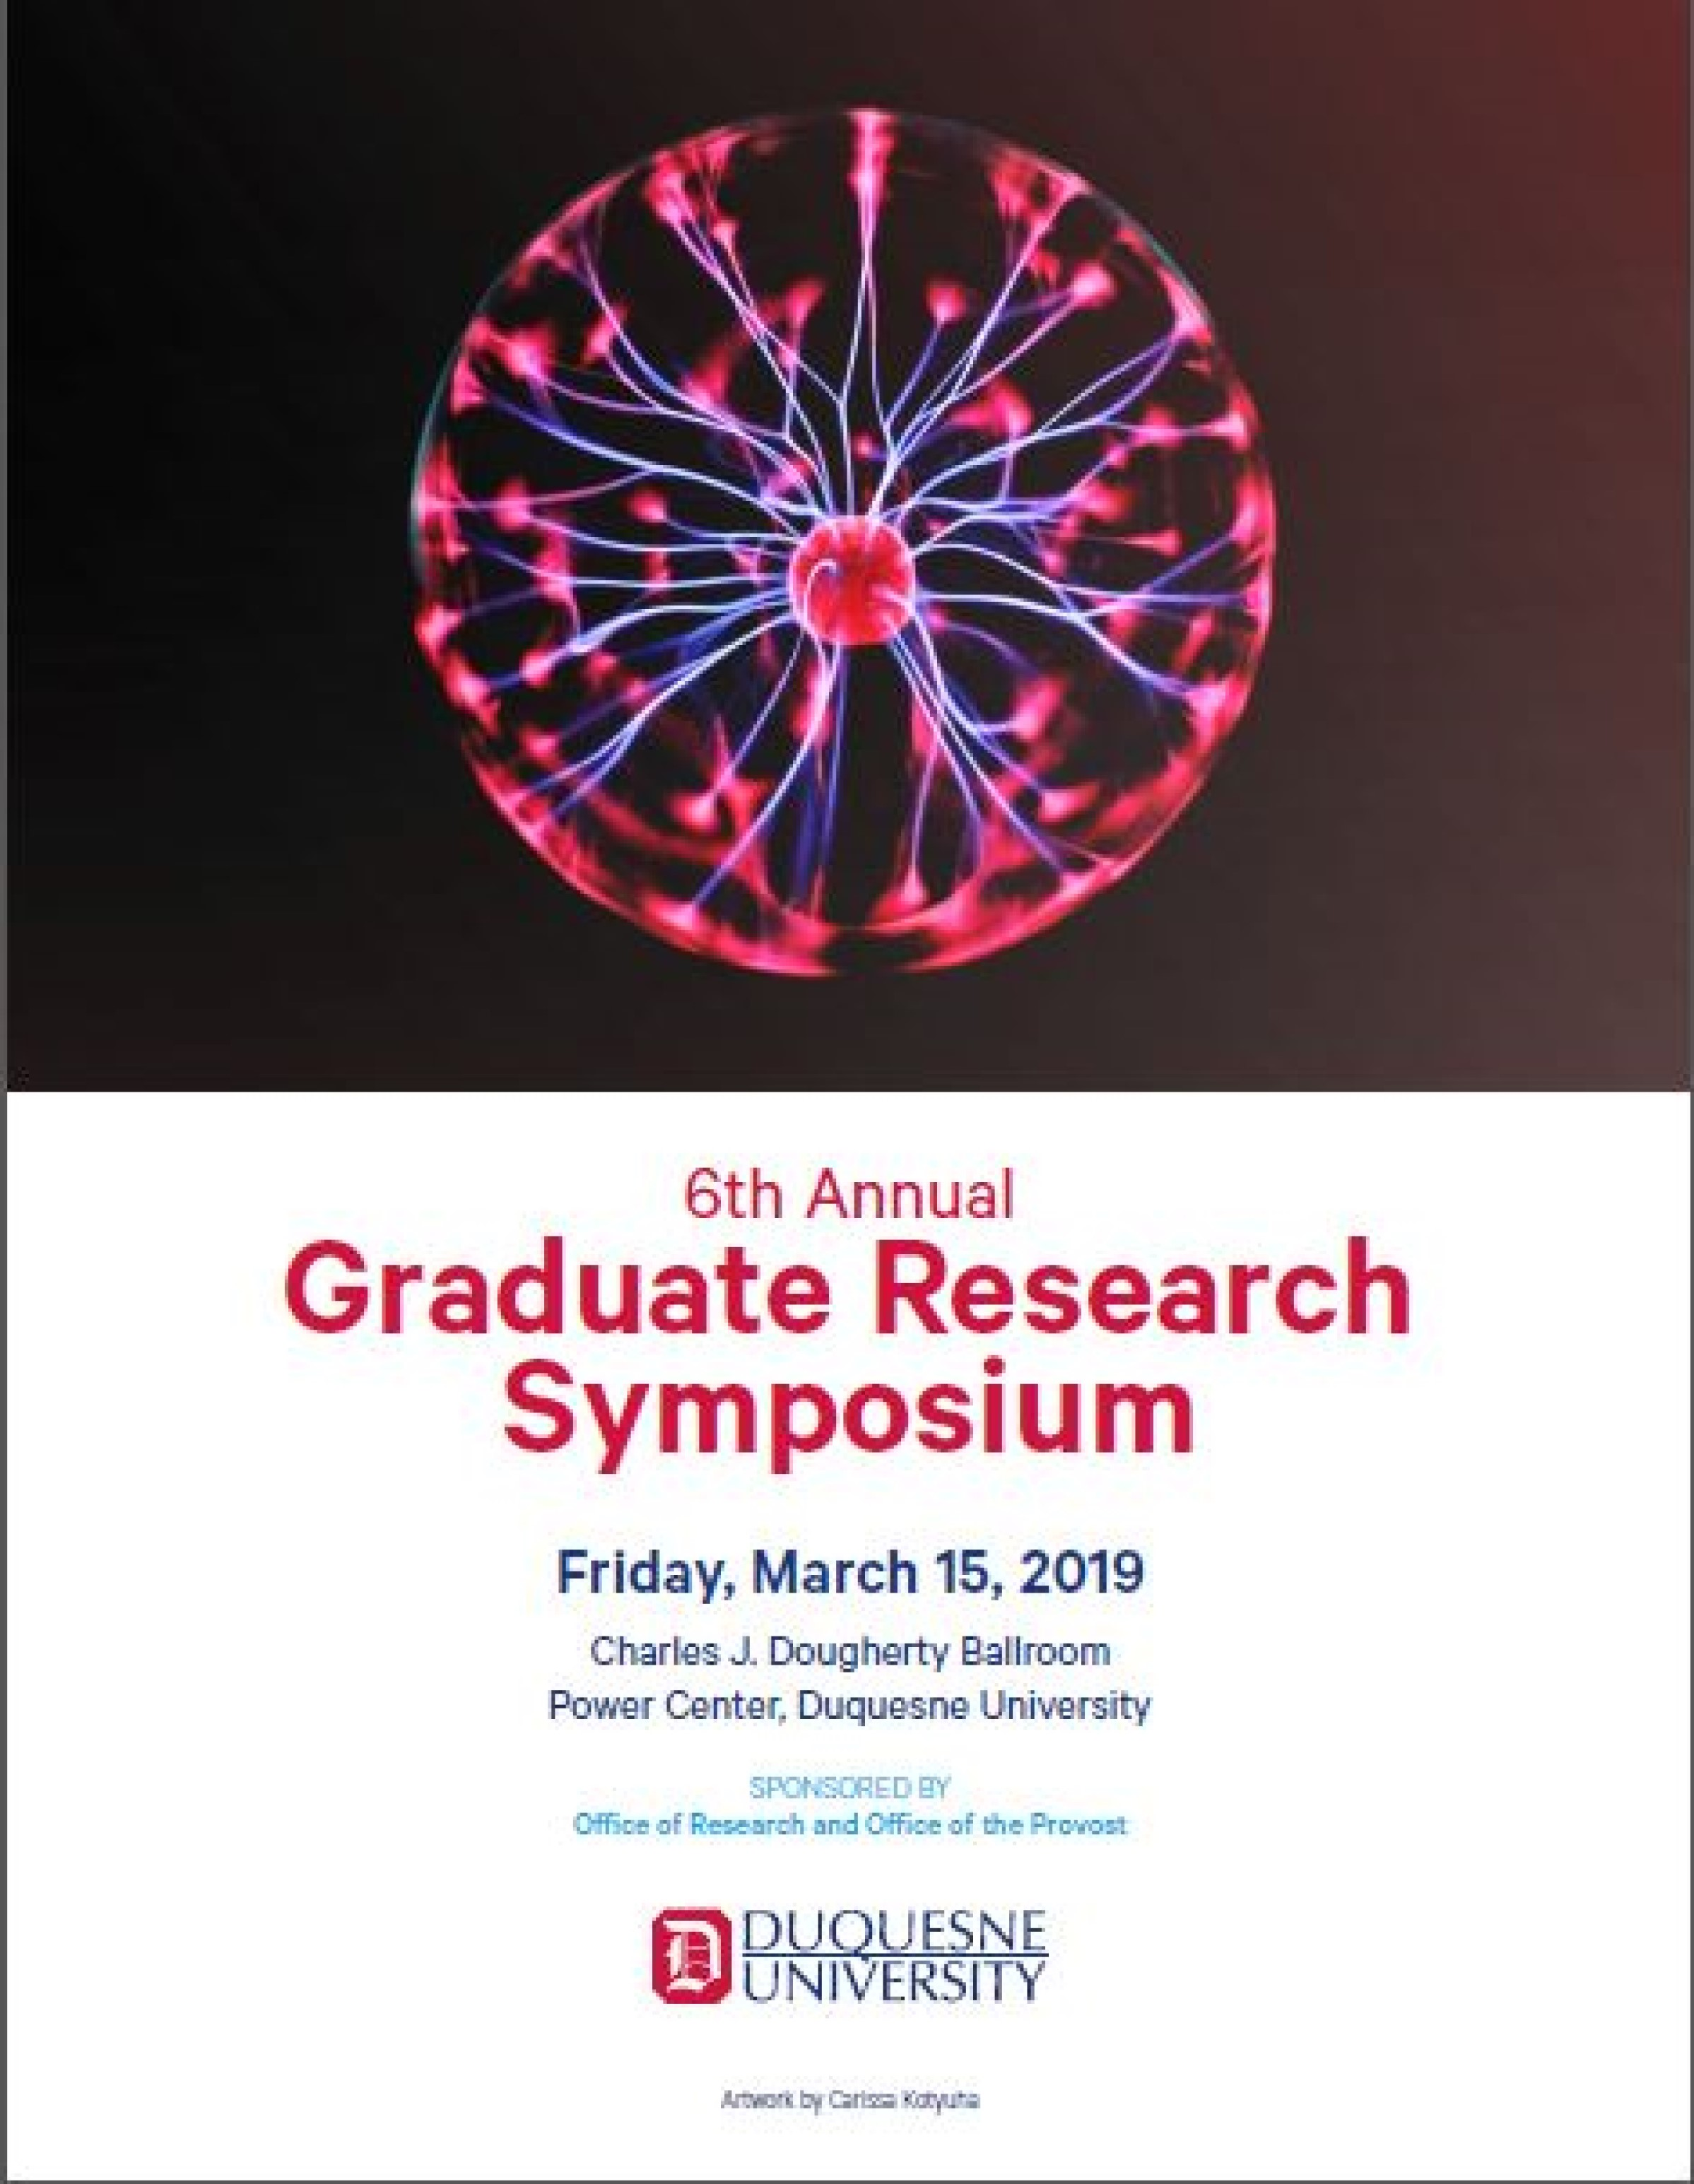 The 6th Annual Graduate Student Research Symposium